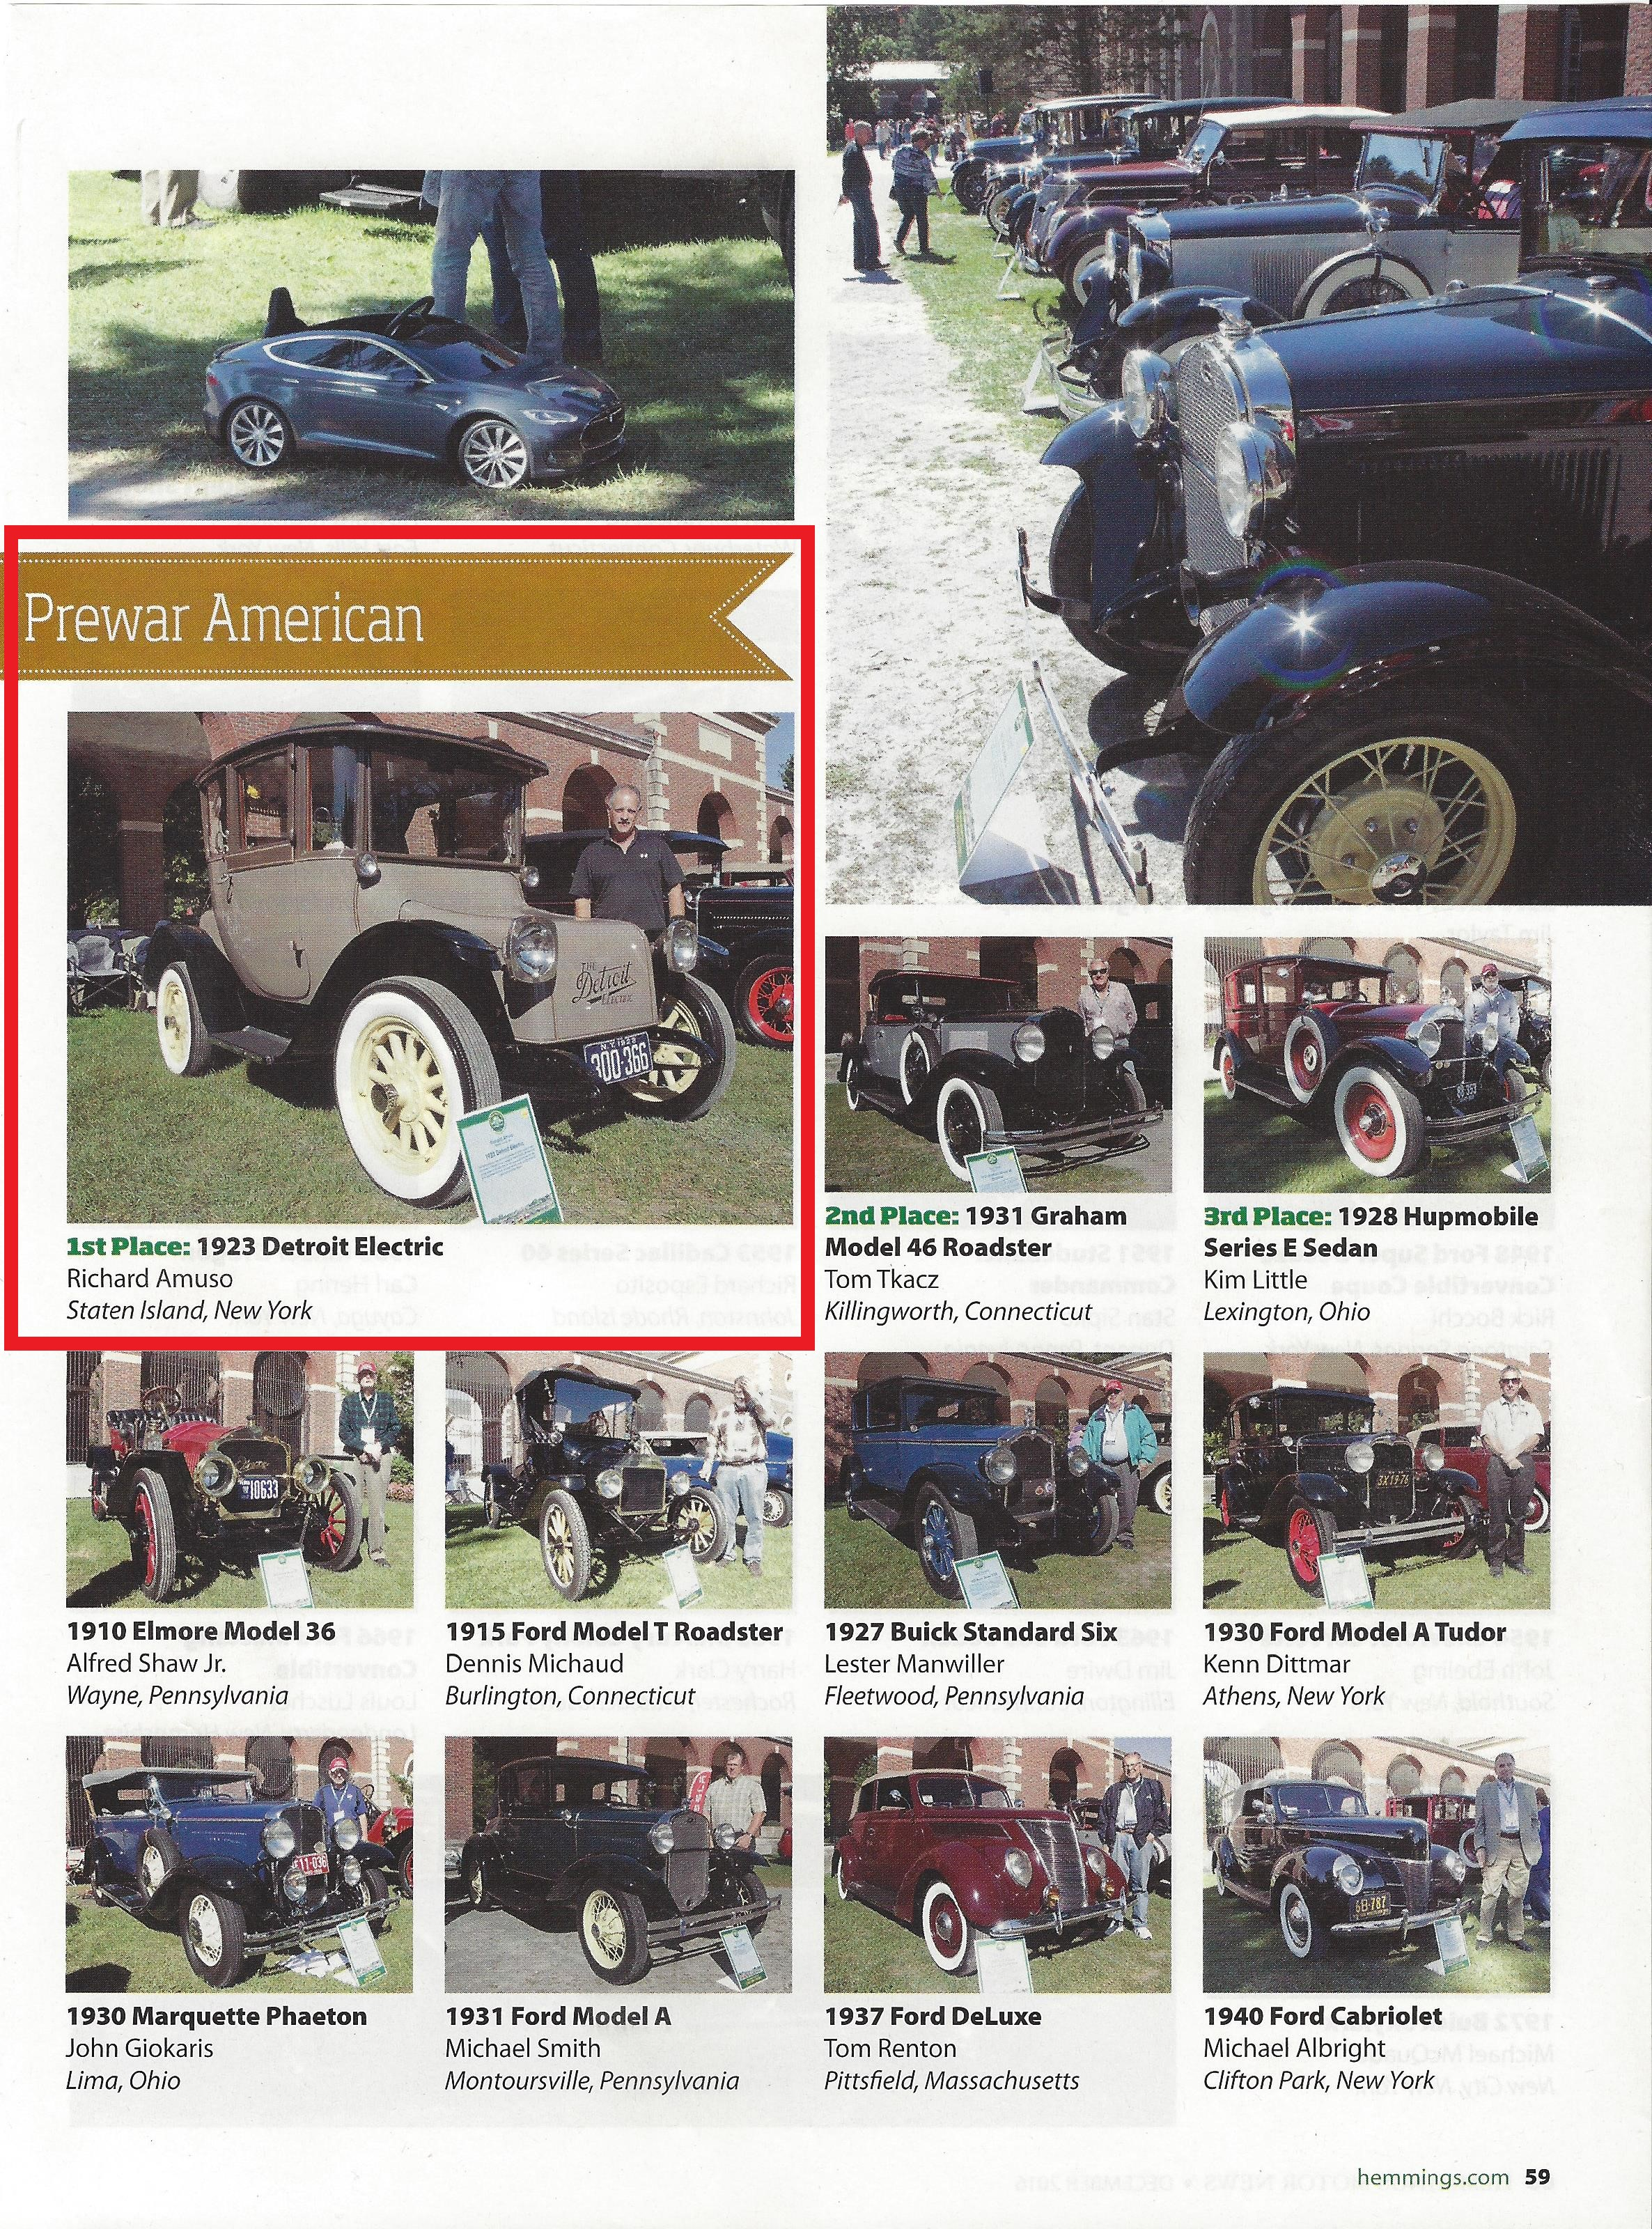 Hemmings Concours Magazine Coverage 02.jpg